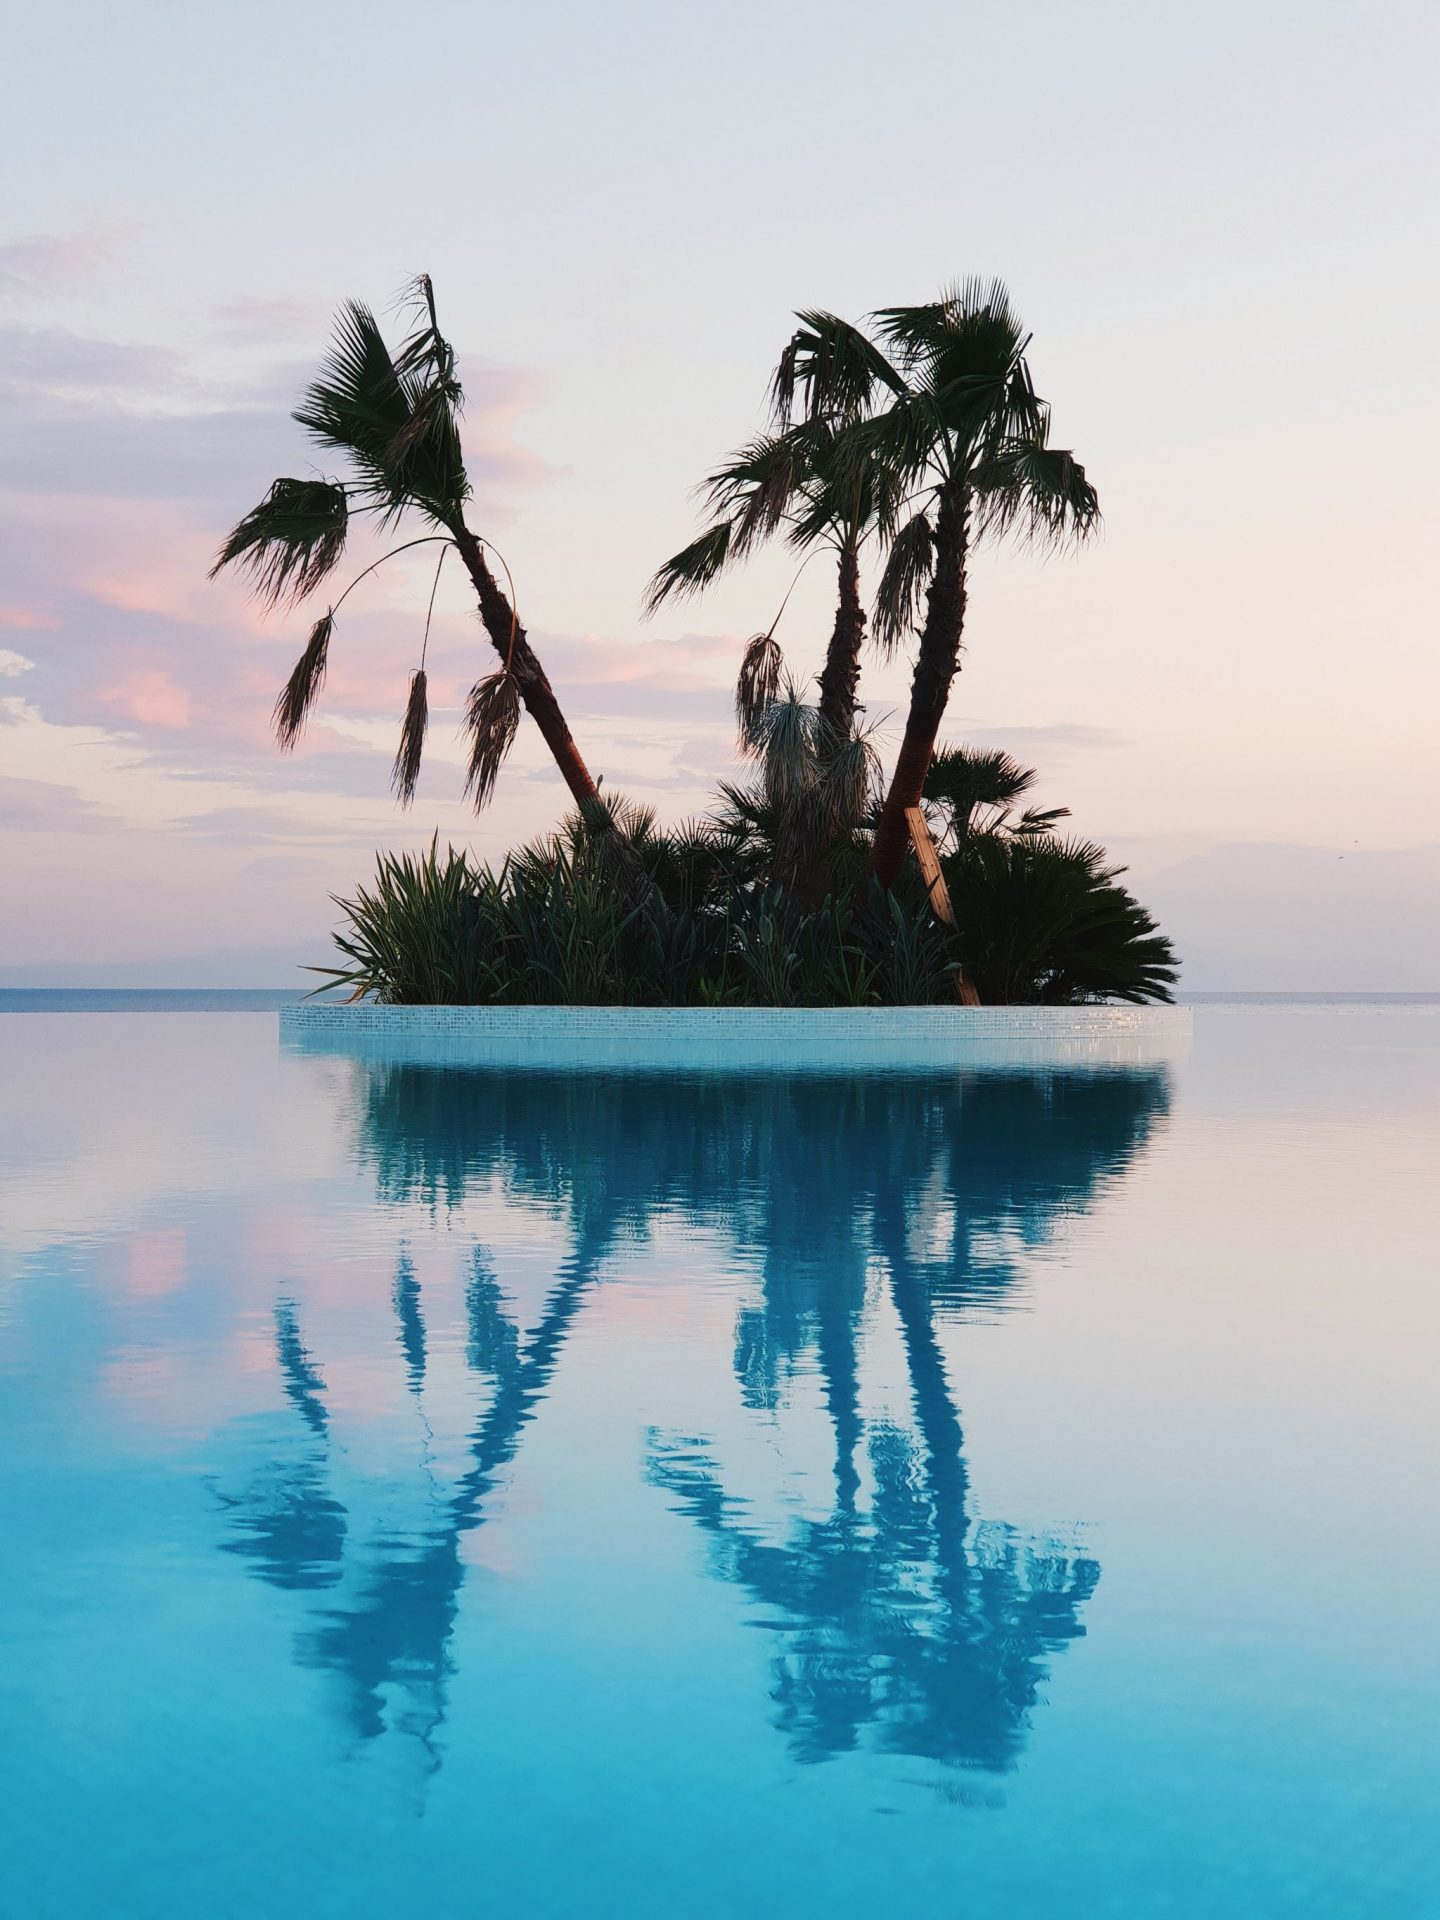 travel, traveling, palmtrees, island, gorgeous, sunset, sky, inspire, travel blogger, dream trip, inspiration, wanderlust